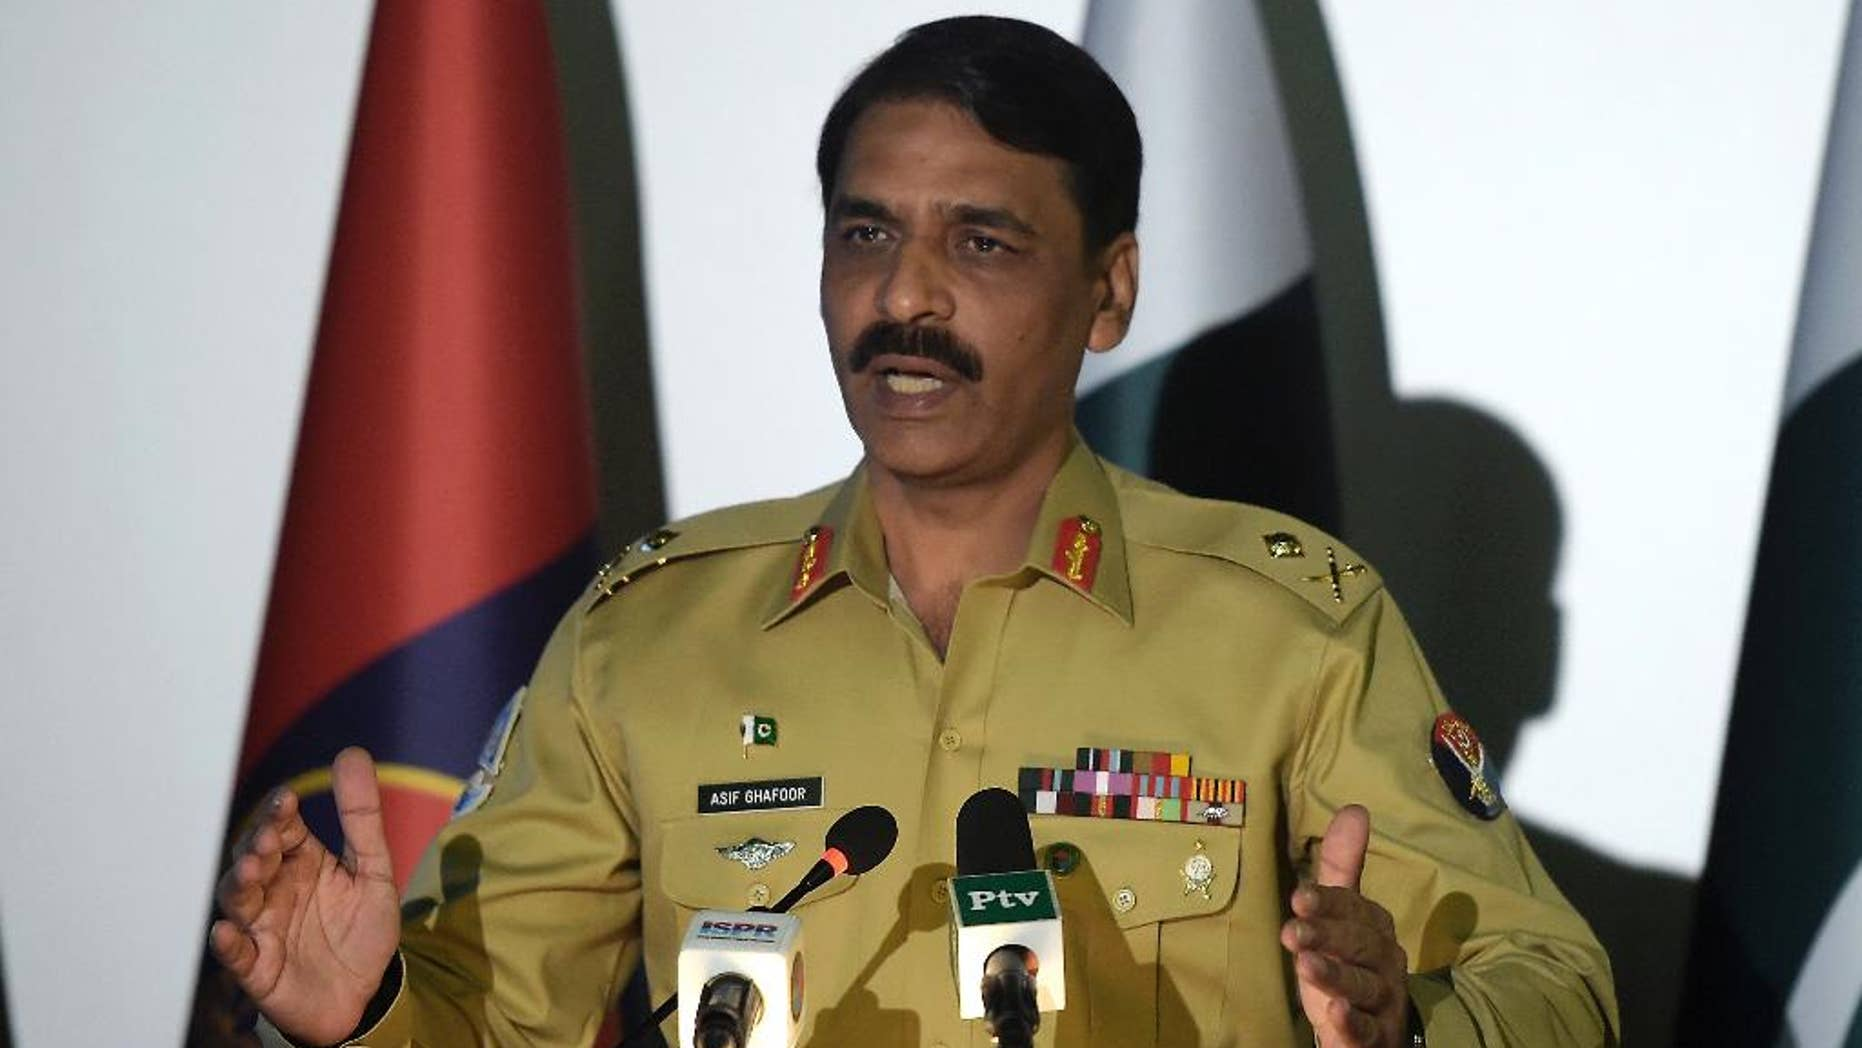 FILE - In this Monday, April 17, 2017 file photo Pakistan's army spokesman Maj. Gen. Asif Ghafoor addresses a news conference in Rawalpindi, Pakistan. Pakistan's military backed off on Wednesday, May 10  after publicly questioning the prime minister's decision to sack an adviser over an explosive newspaper article alleging a rift between the country's civilian government and the military. (AP Photo/Anjum Naveed,file)